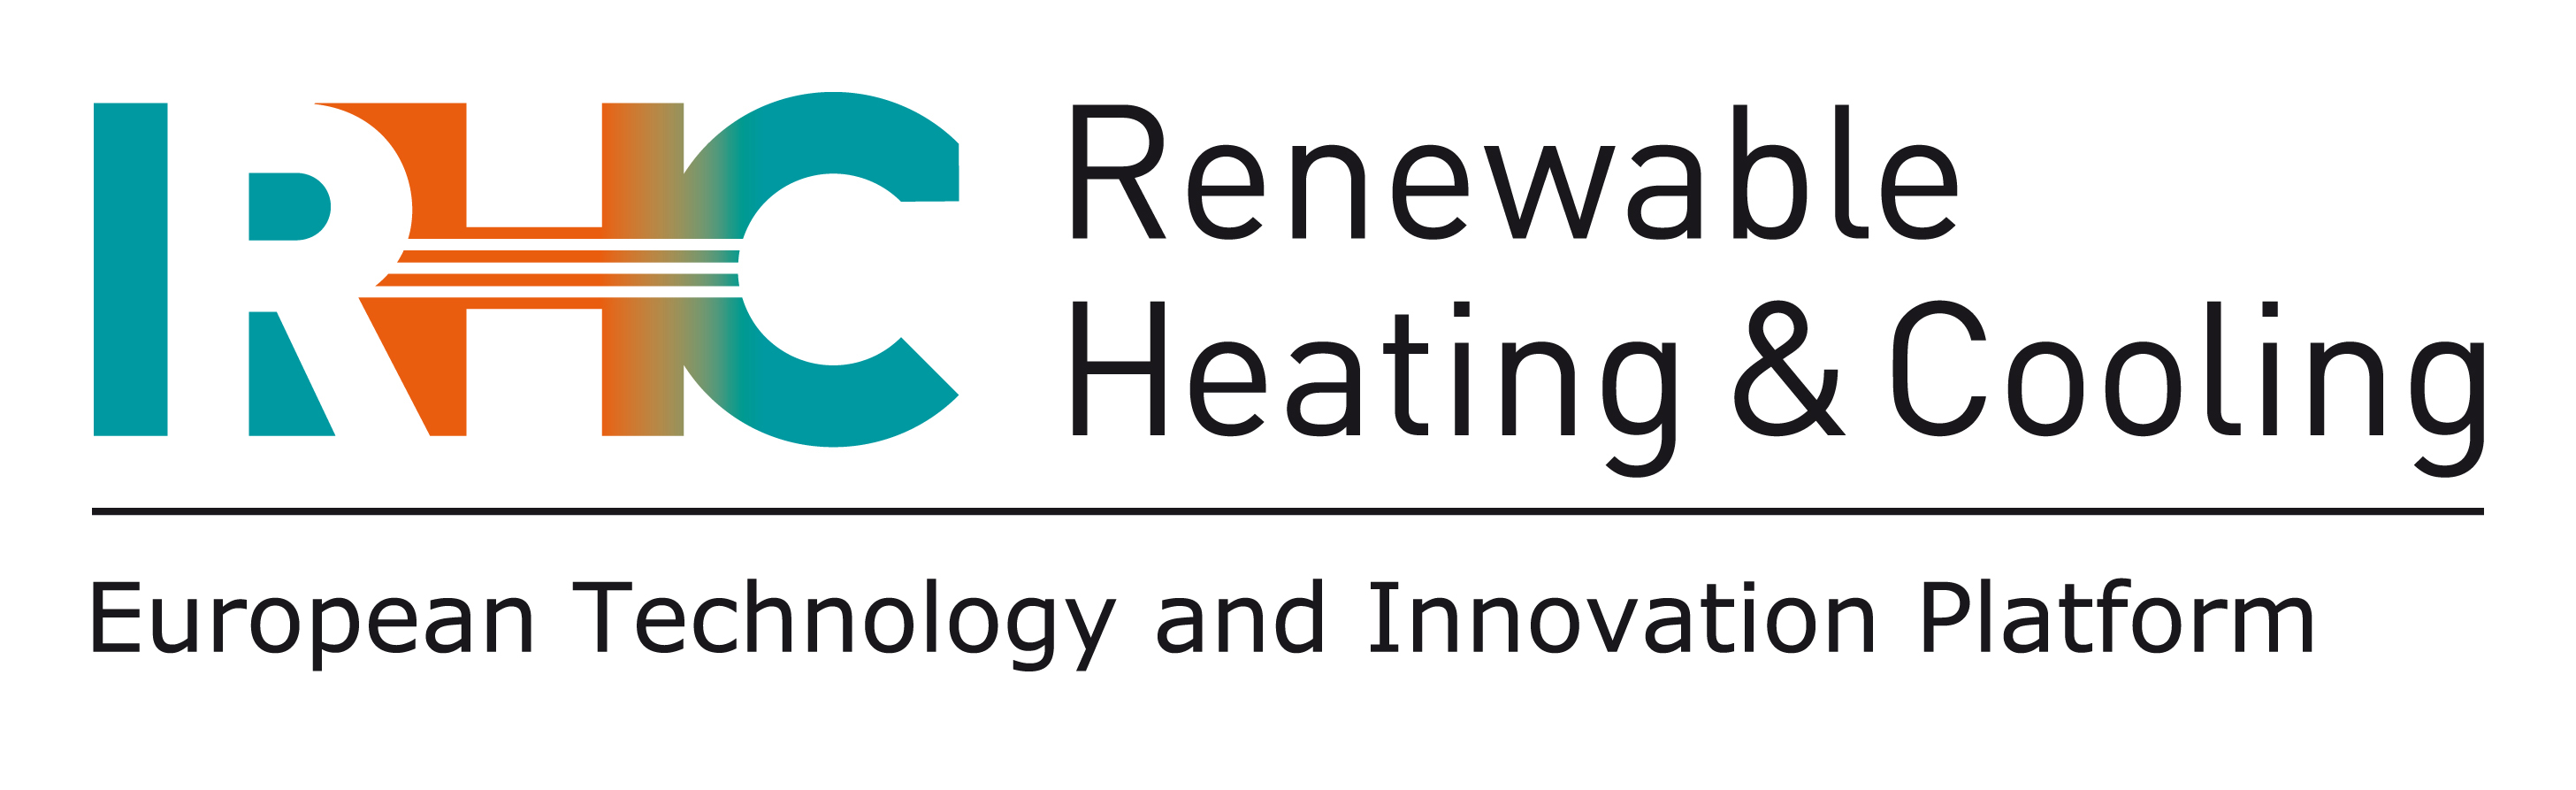 Support to key activities of the European Technology and Innovation Platform on Renewable Heating and Cooling